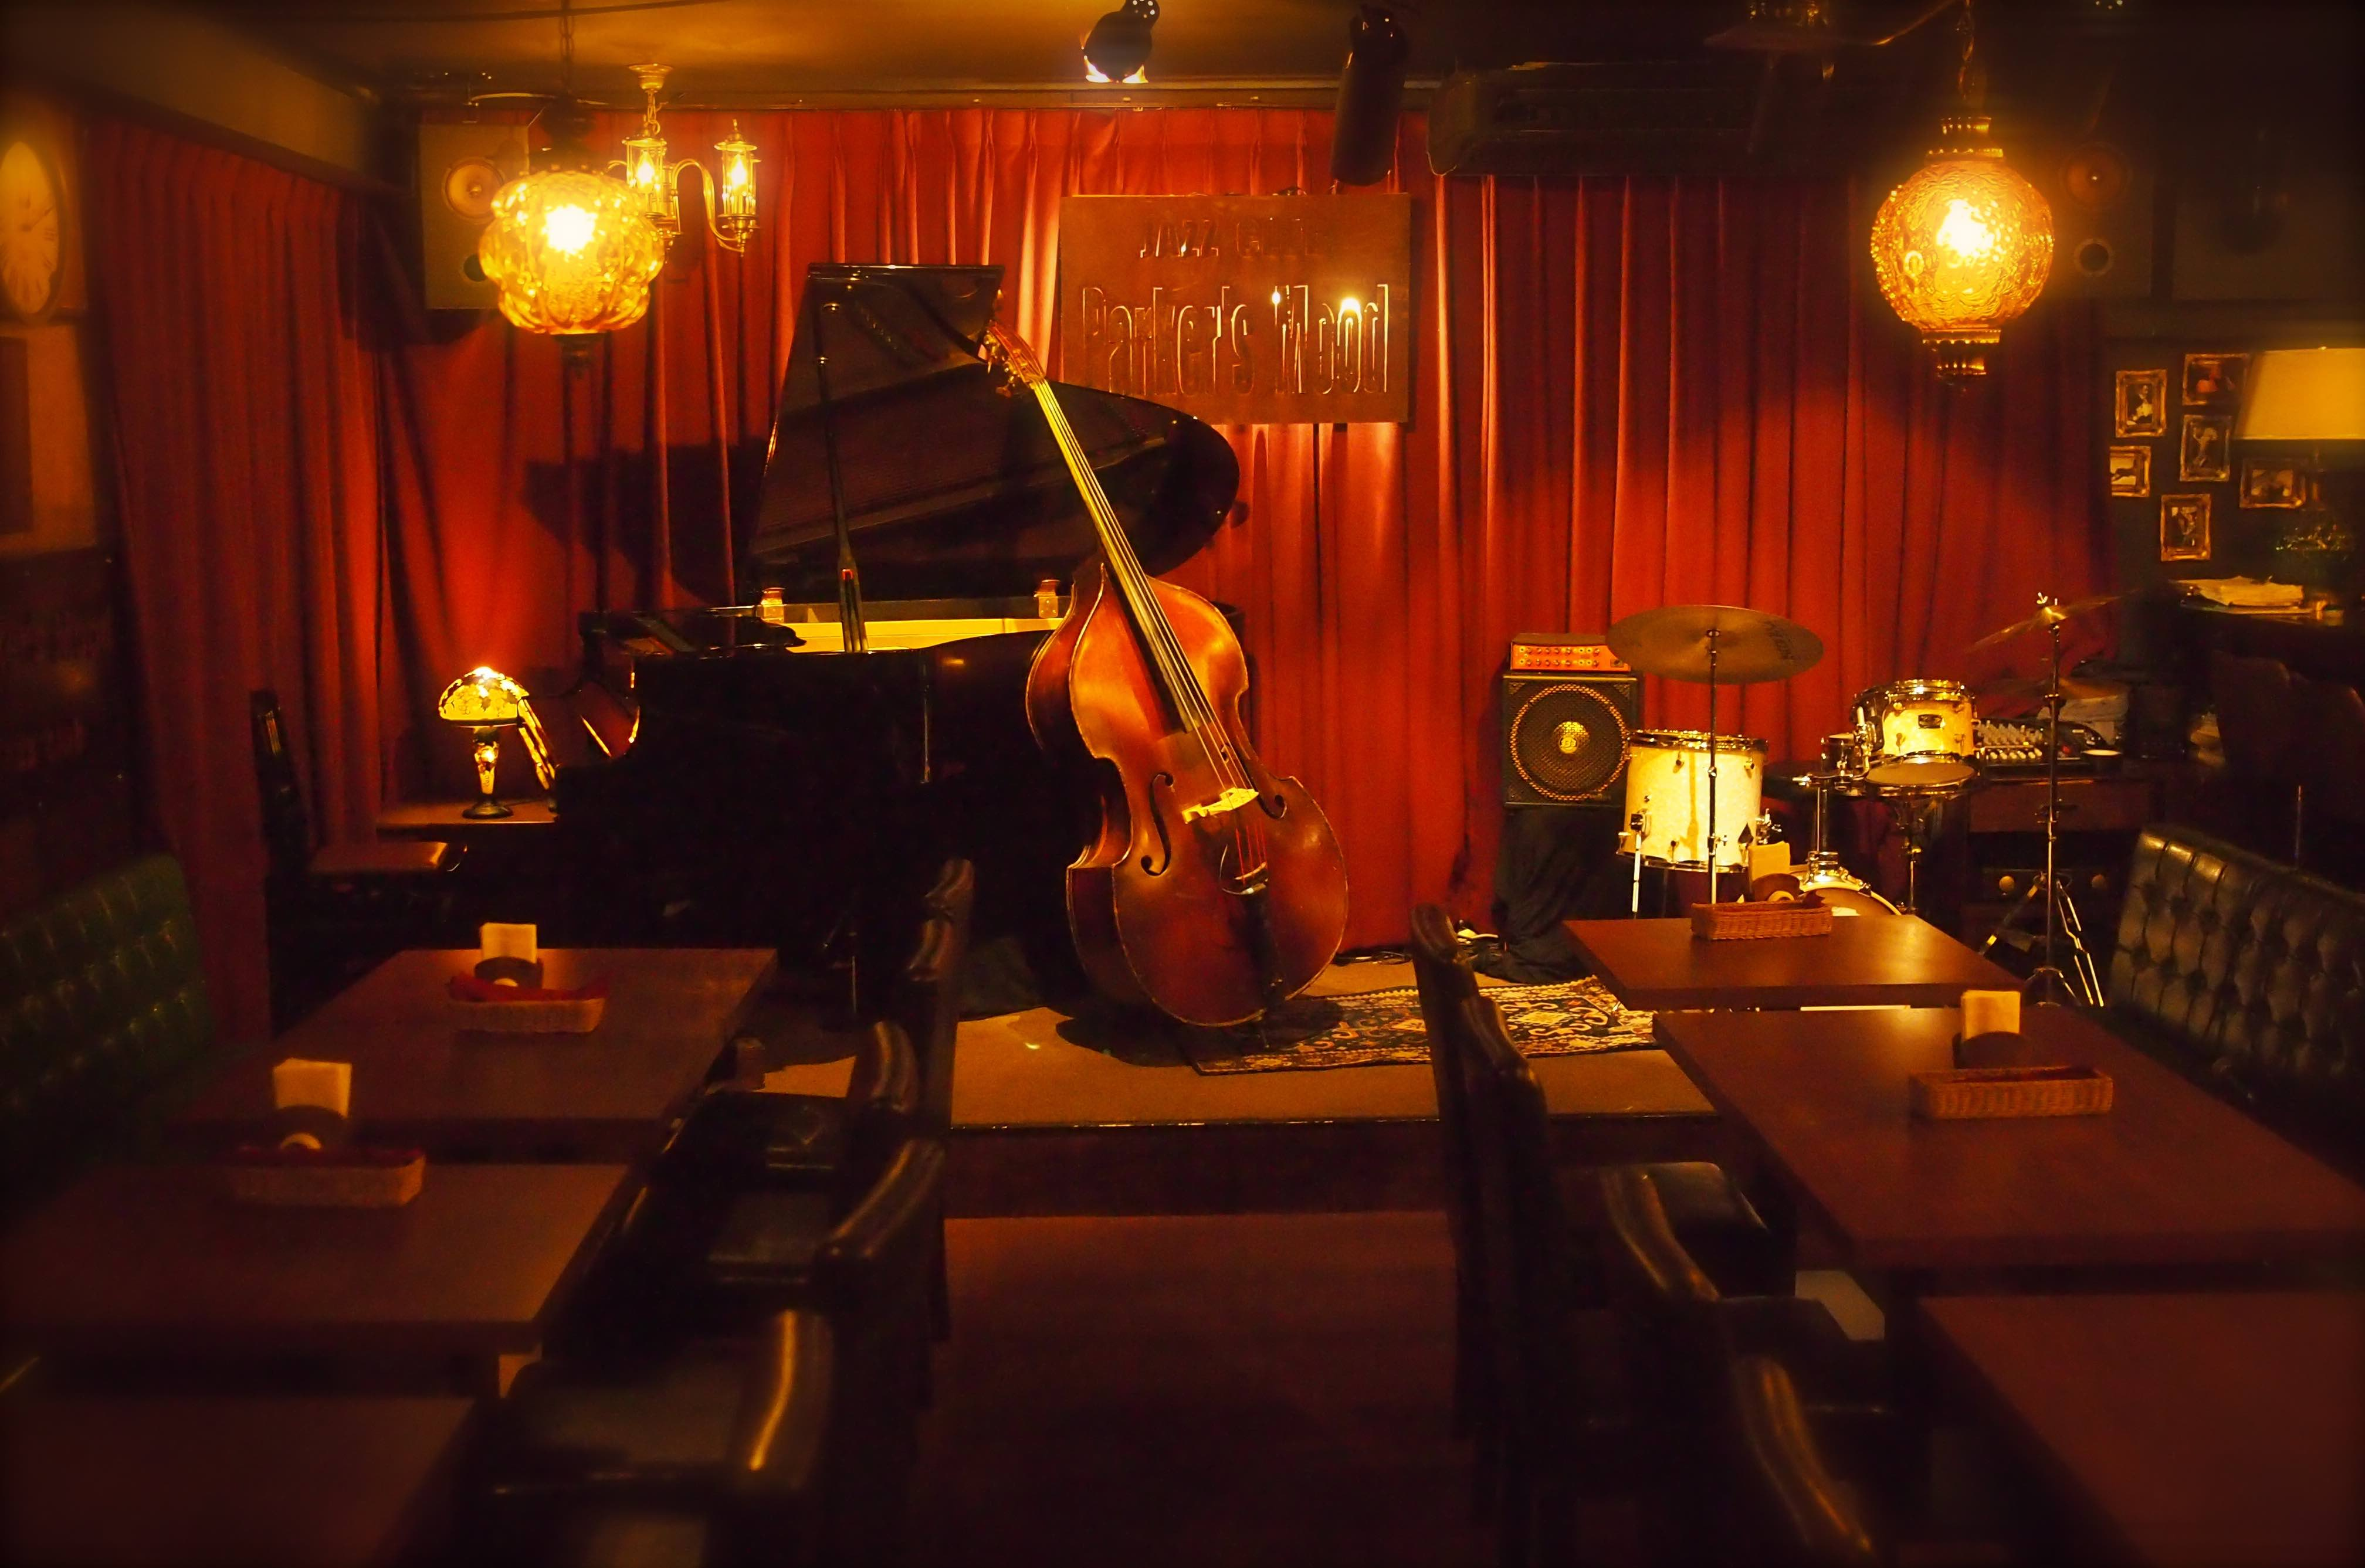 Parker's Mood Jazz Club Naha,Okinawa